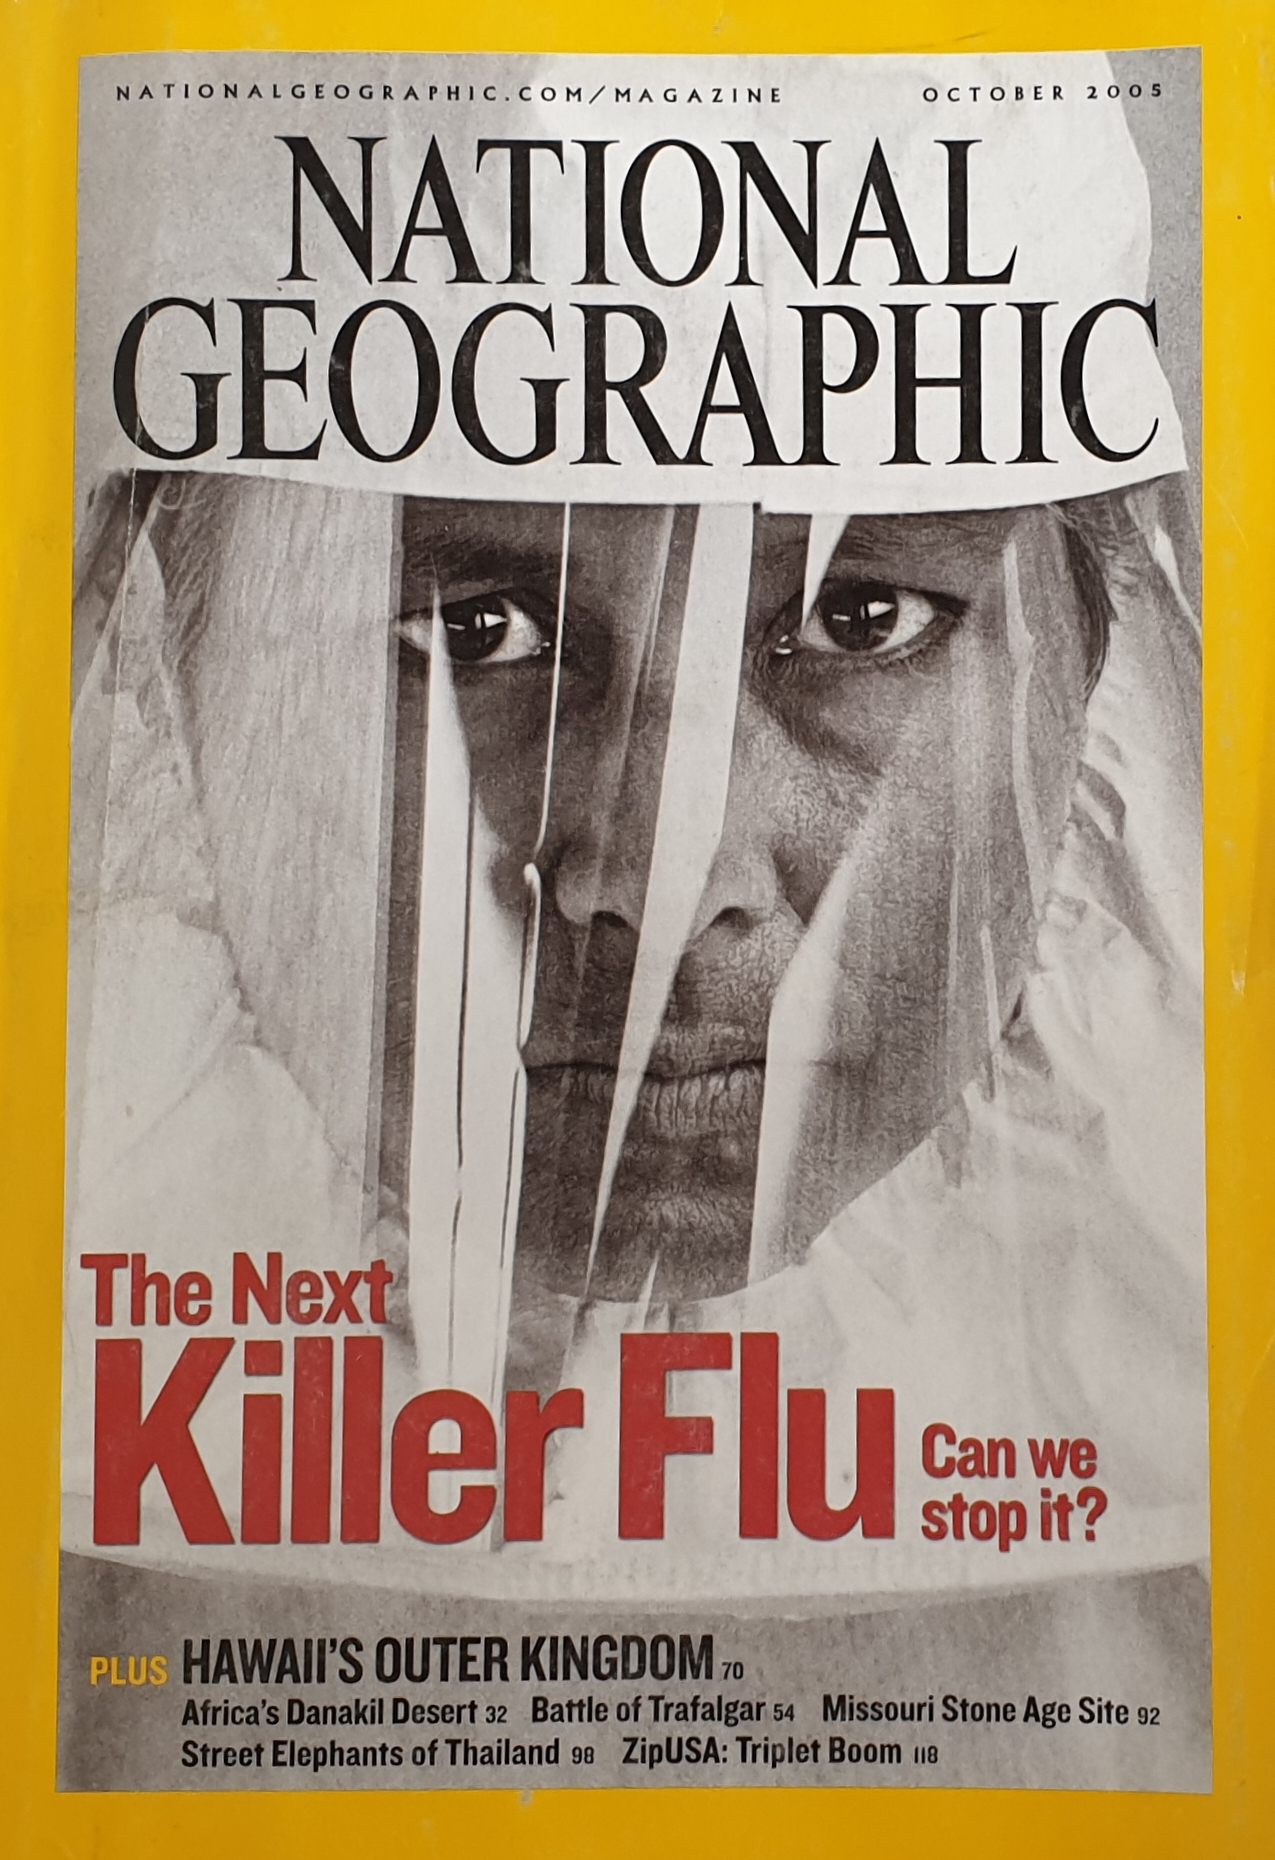 NATIONAL GEOGRAPHIC October 2005: The Next Killer Flu – Can we stop it?